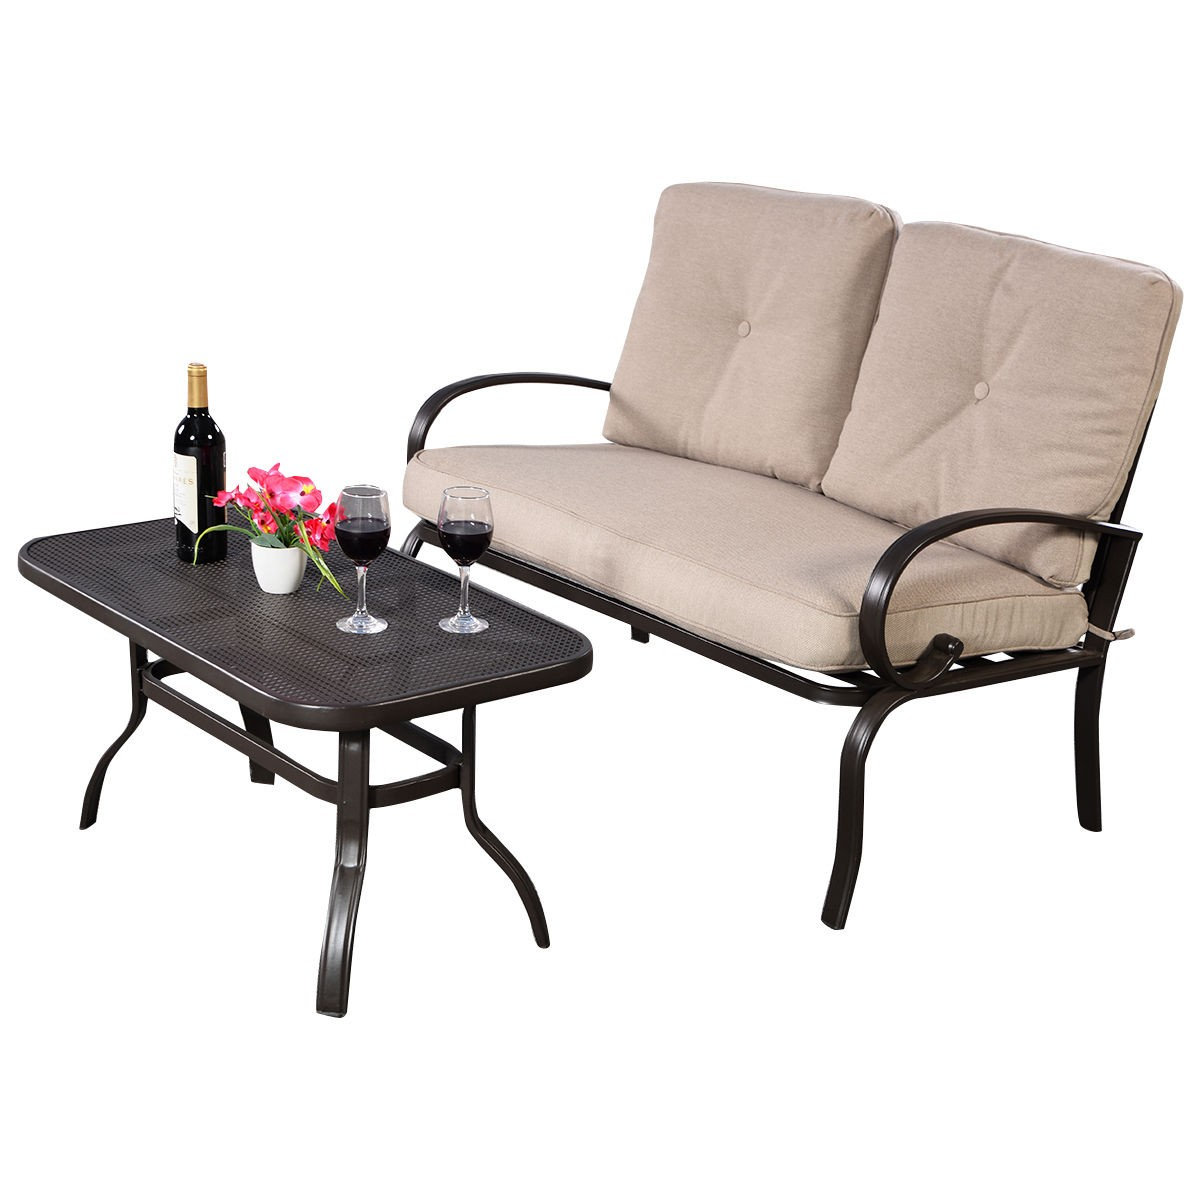 Patio Furniture Loveseat Cushions: 2 Pcs Patio Outdoor LoveSeat Coffee Table Set Furniture